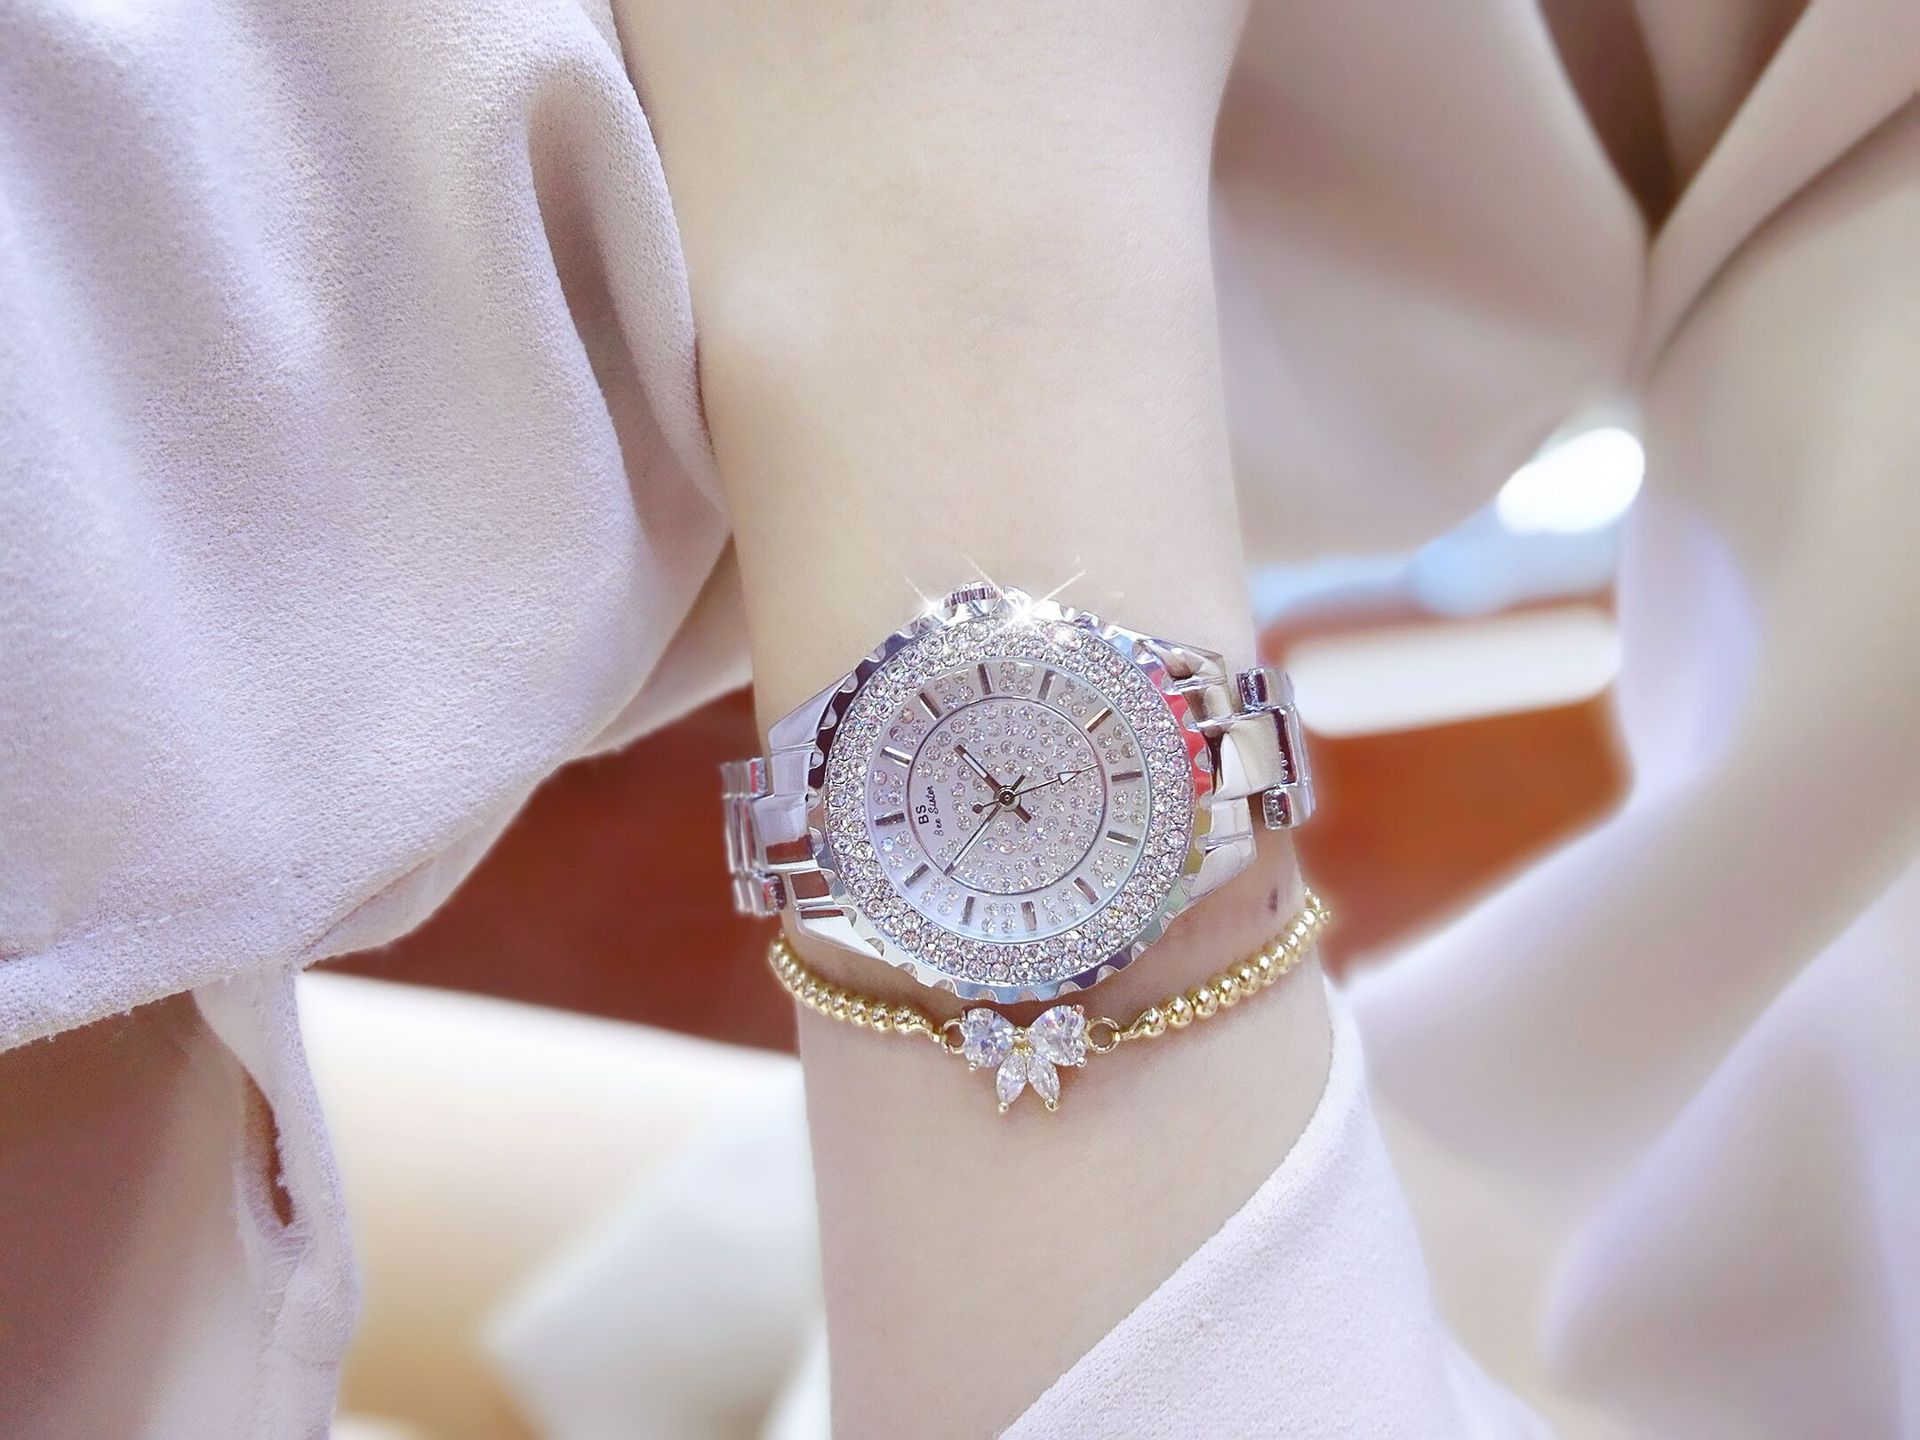 Hot selling watch full Crystal female watch 2021 Ladies Wrist Watches Dress Watch Women Diamond Watches Stainless Steel Clock enlarge